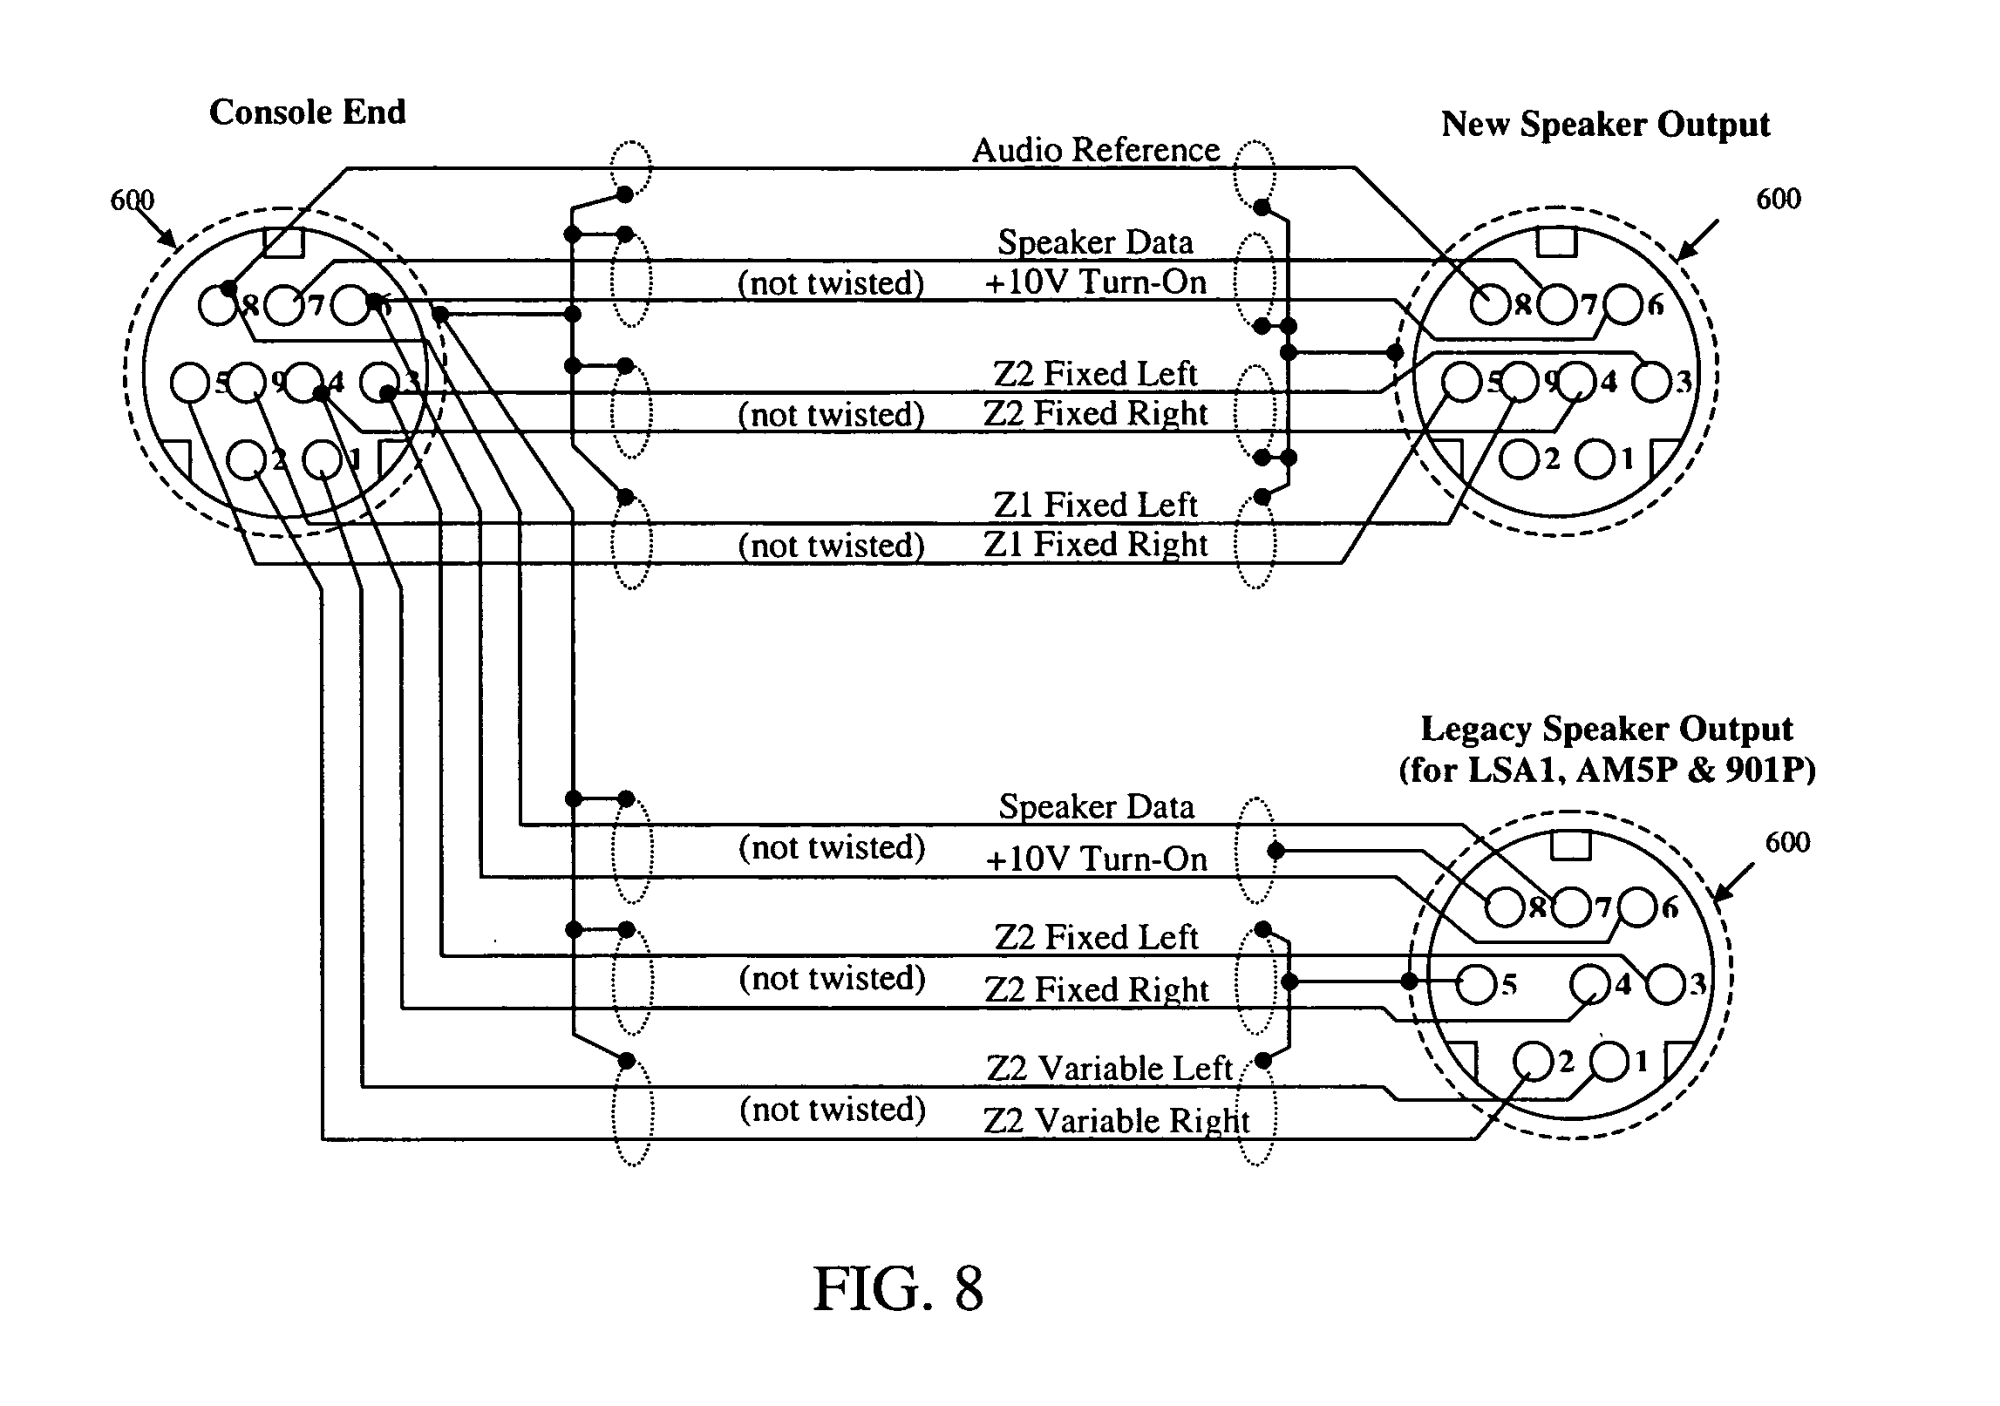 hight resolution of  us20050289224a1 20051229 d00006 patent us20050289224 managing an audio network google patents bose link cable wiring diagram